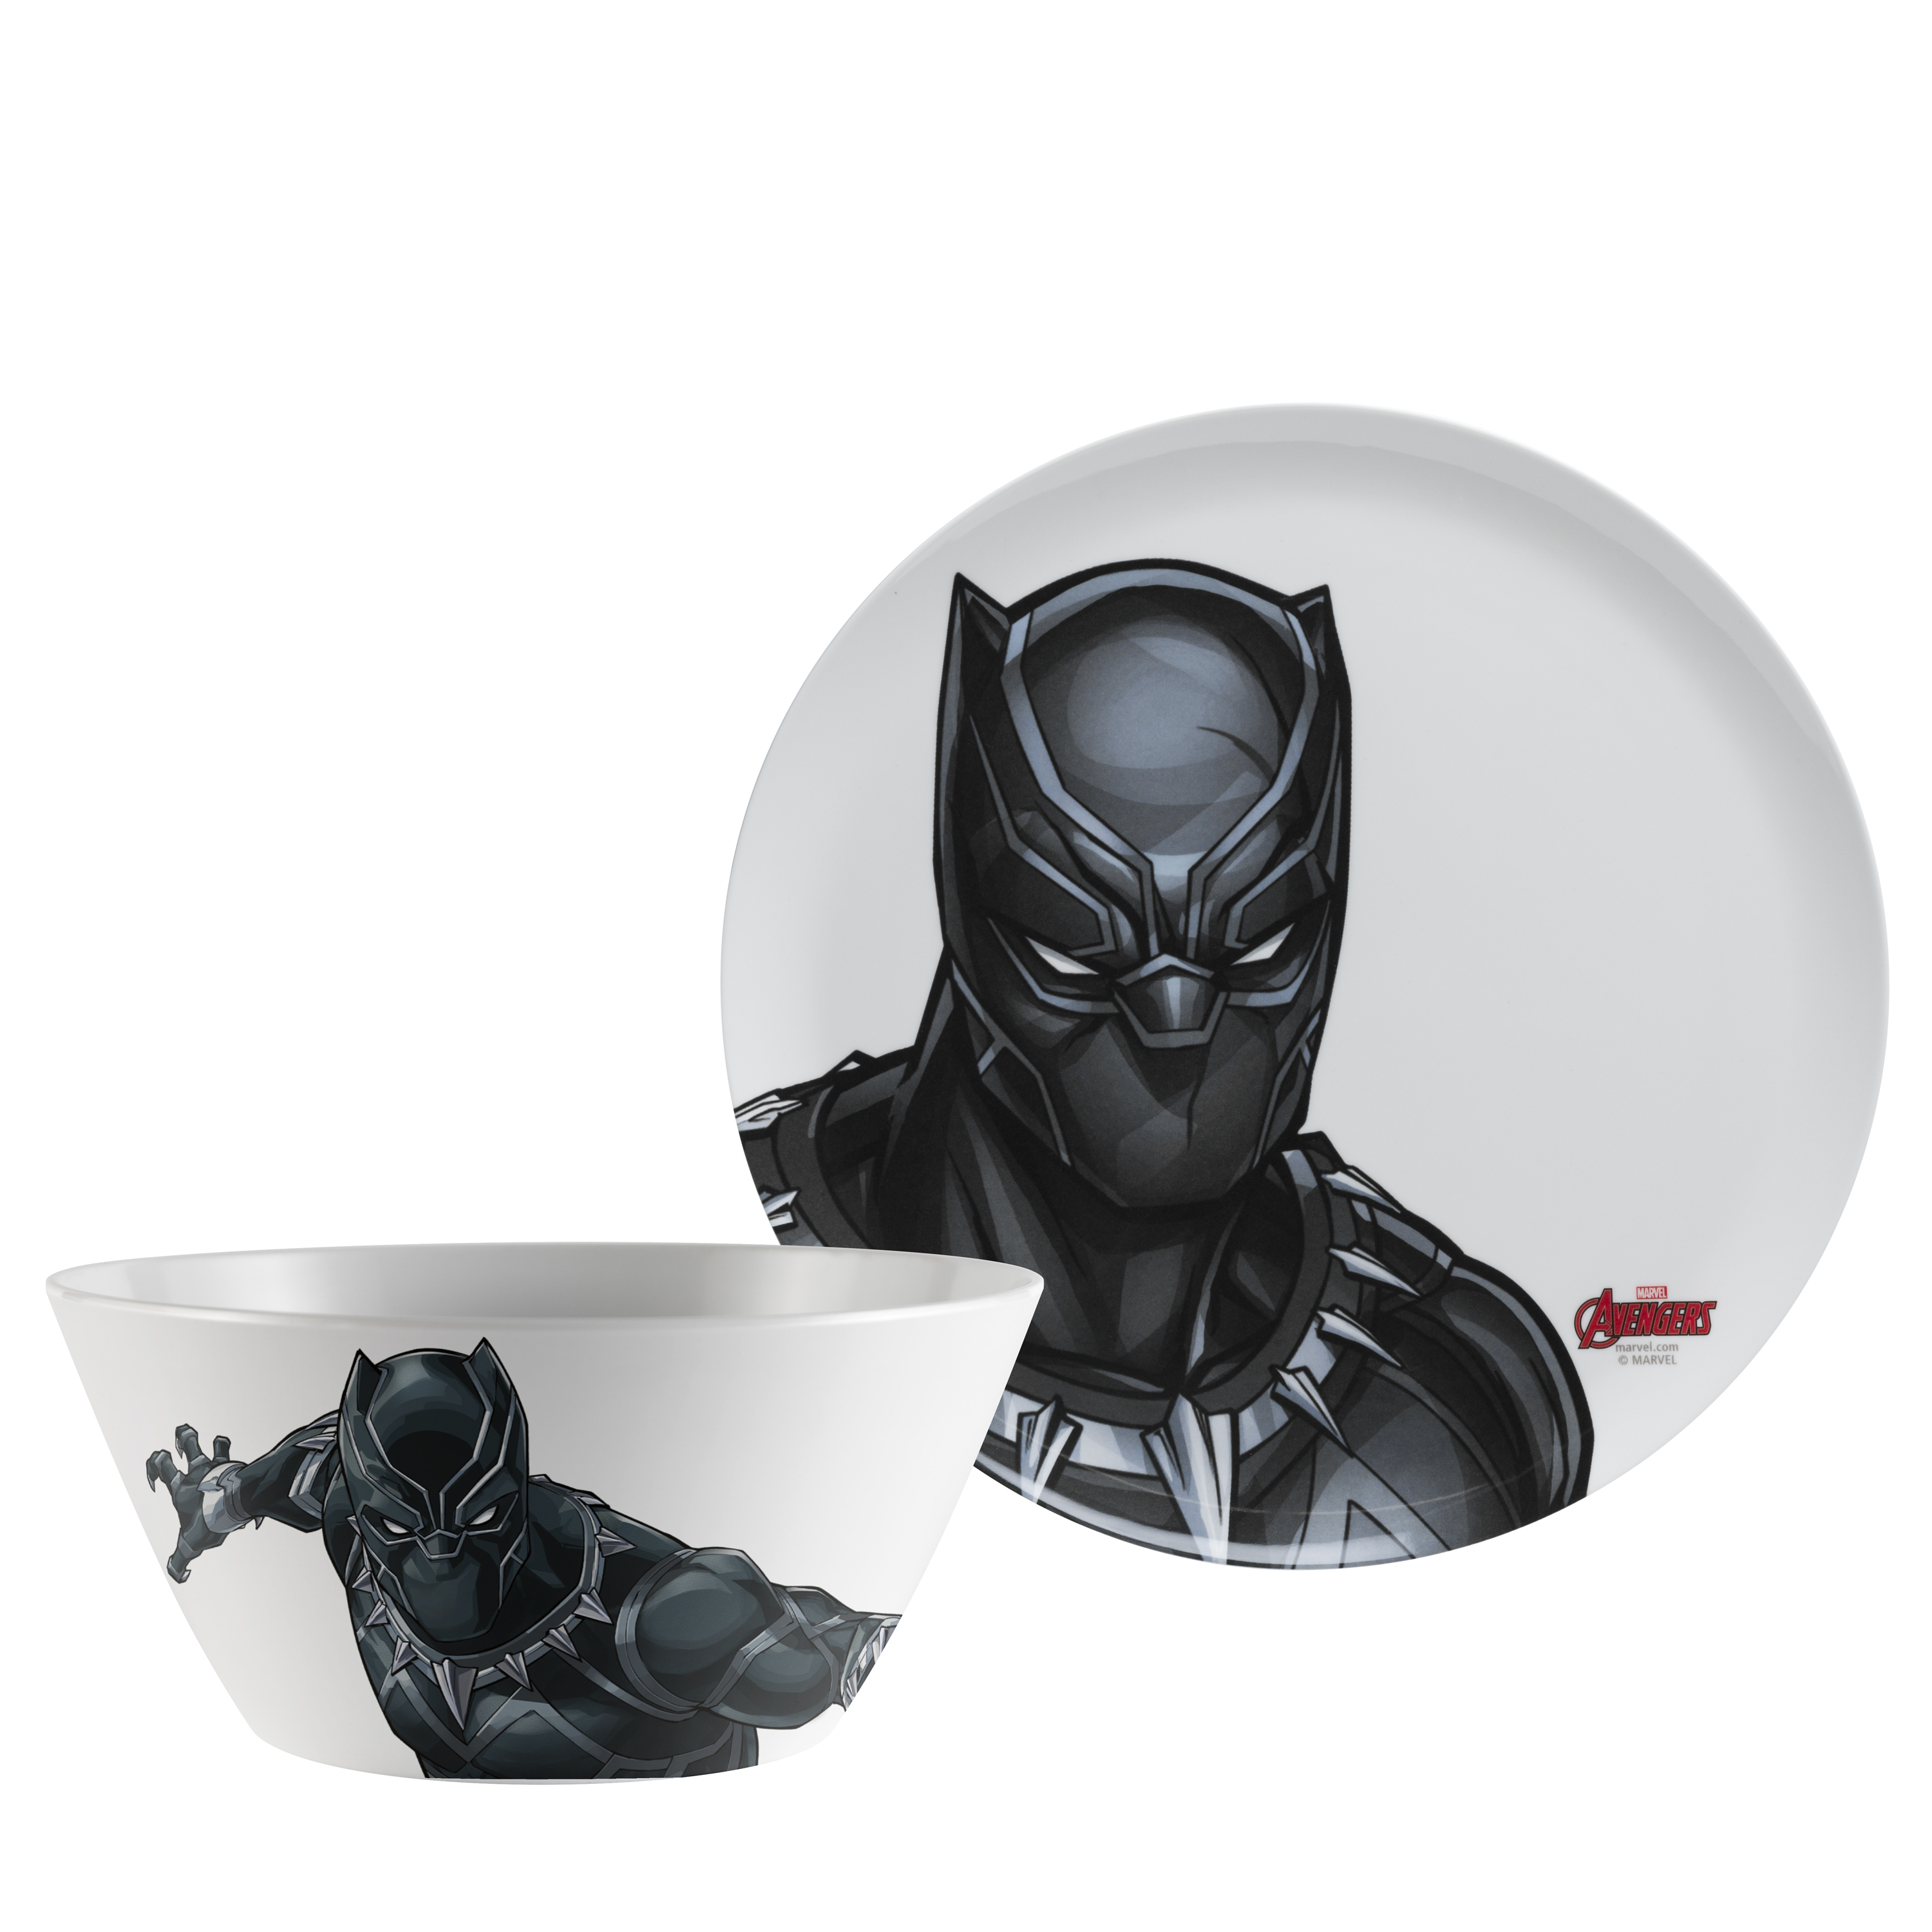 Marvel Comics Dinnerware Set, Black Panther & The Avengers, 2-piece set slideshow image 1